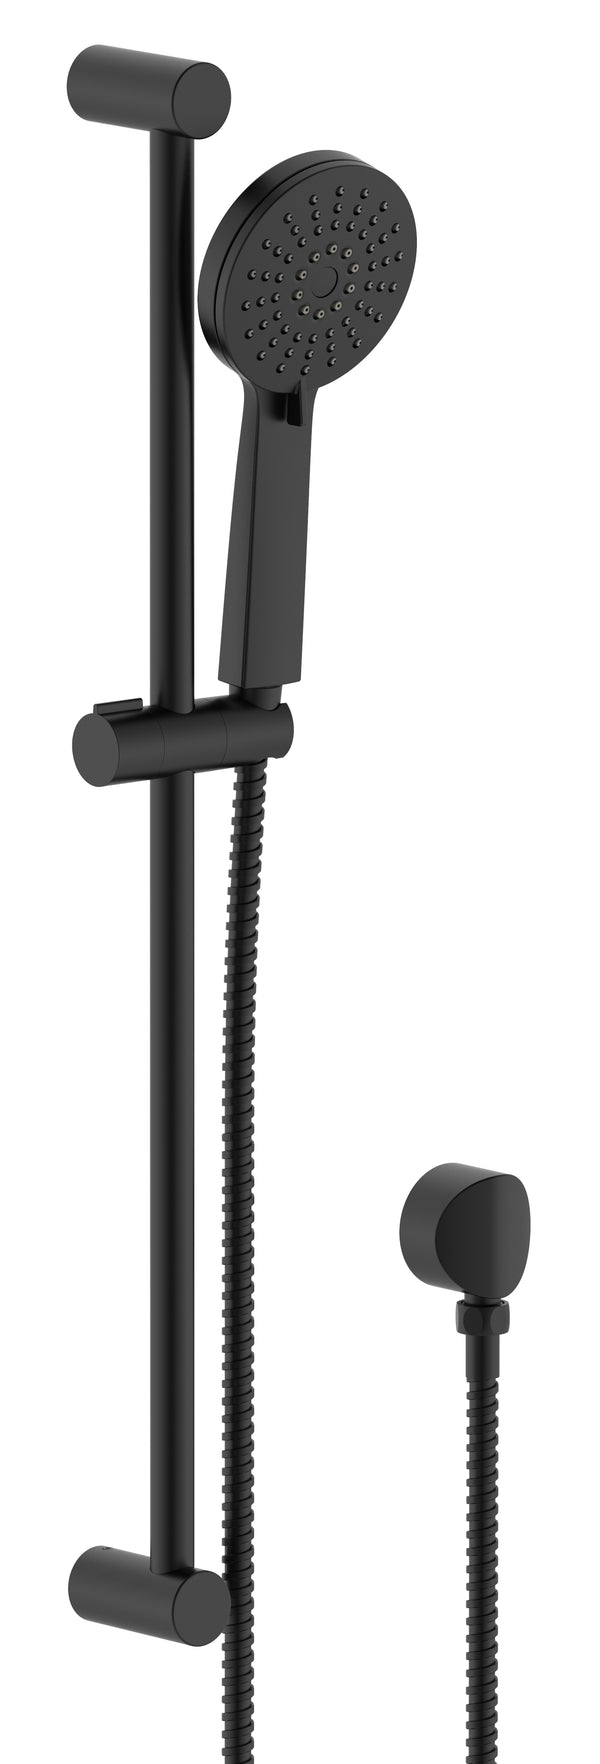 CARRINGTON SLIDING SHOWER RAIL WITH HAND SHOWER MATTE BLACK